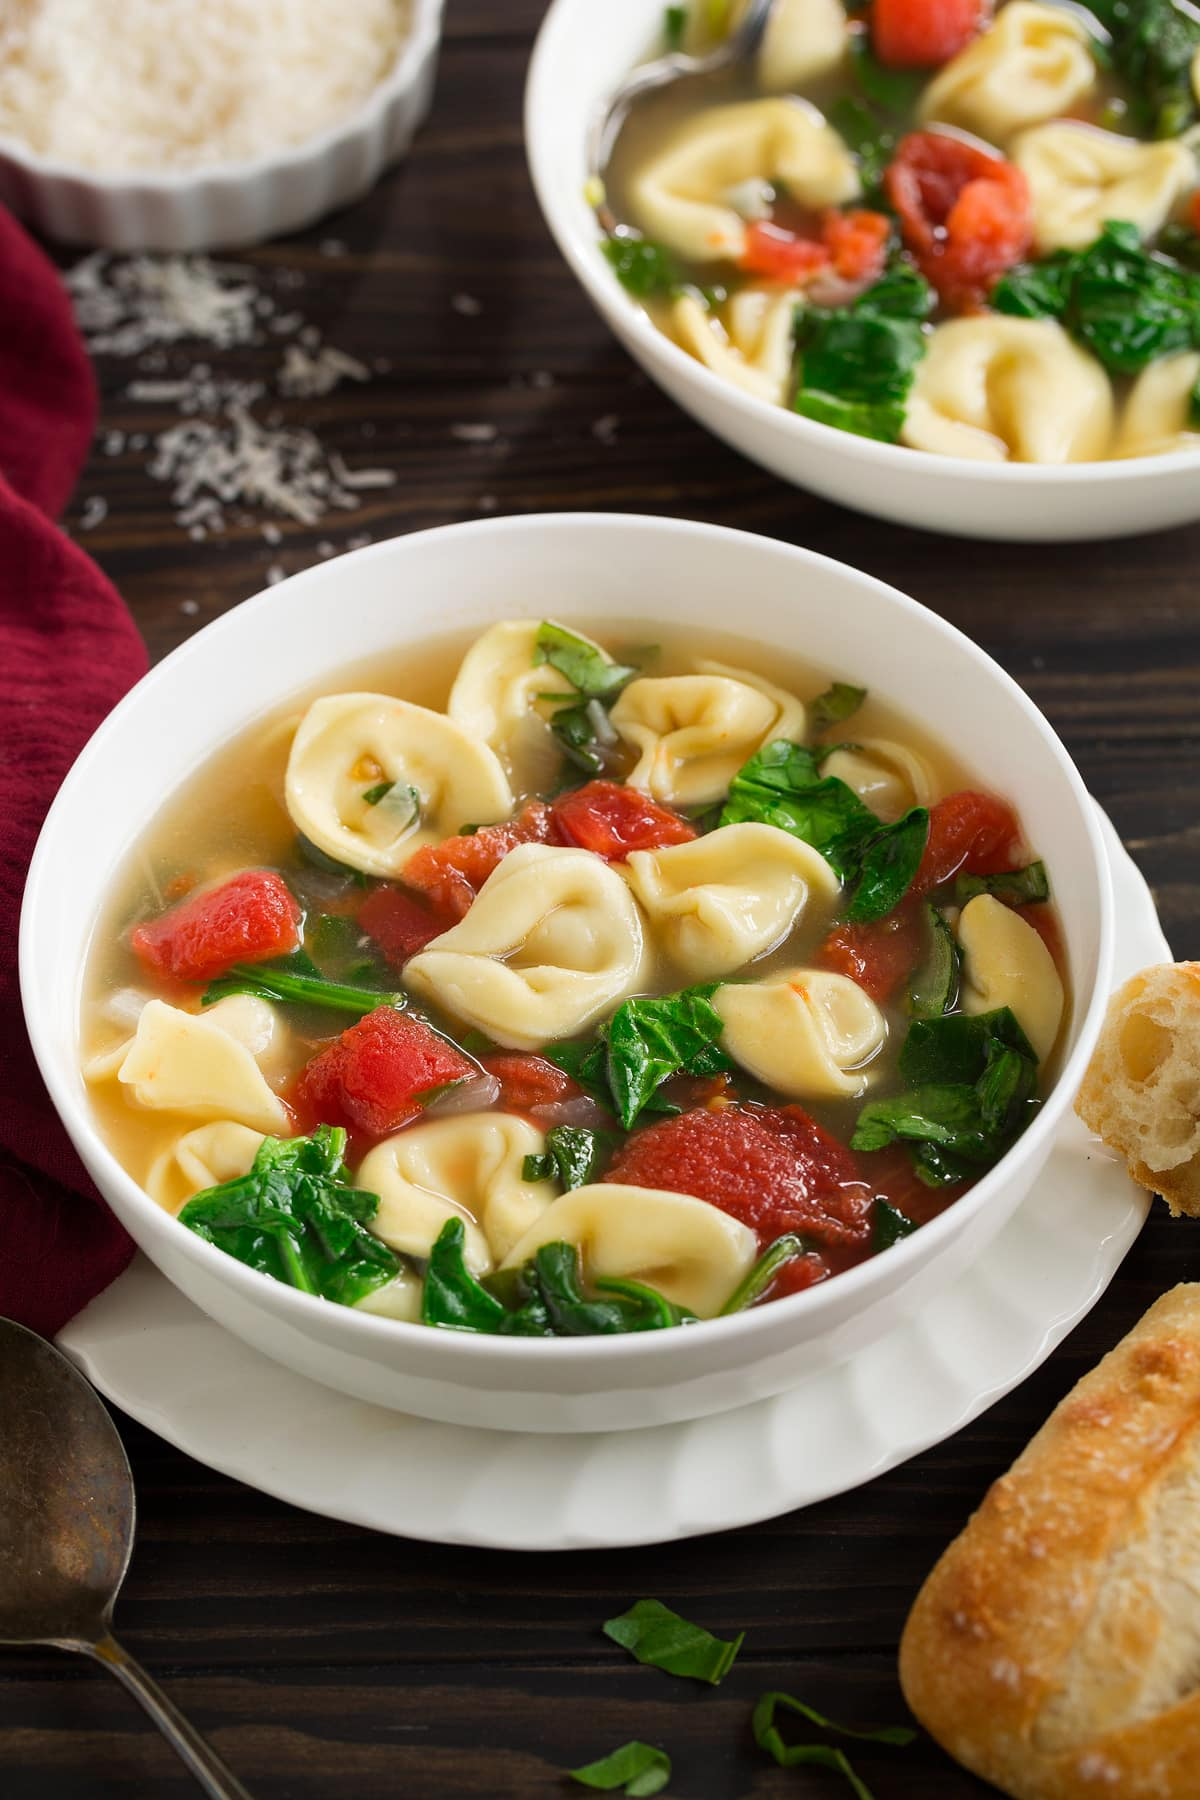 Tortellini Soup with Spinach Tomato and Garlic in a white serving bowl set over a ruffled white plate, sitting on a dark wooden tabletop with a side of bread.